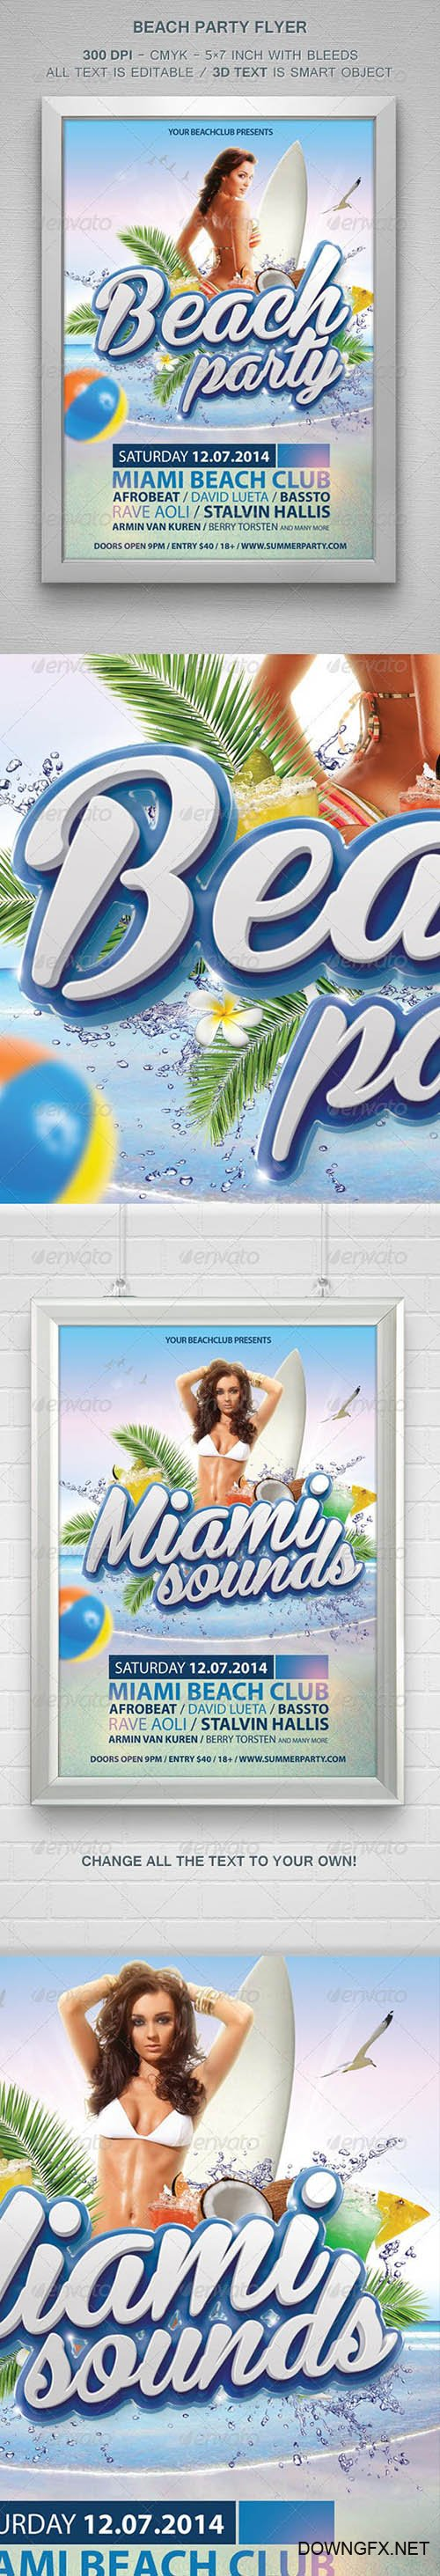 GR - Beach Party Flyer 8208673